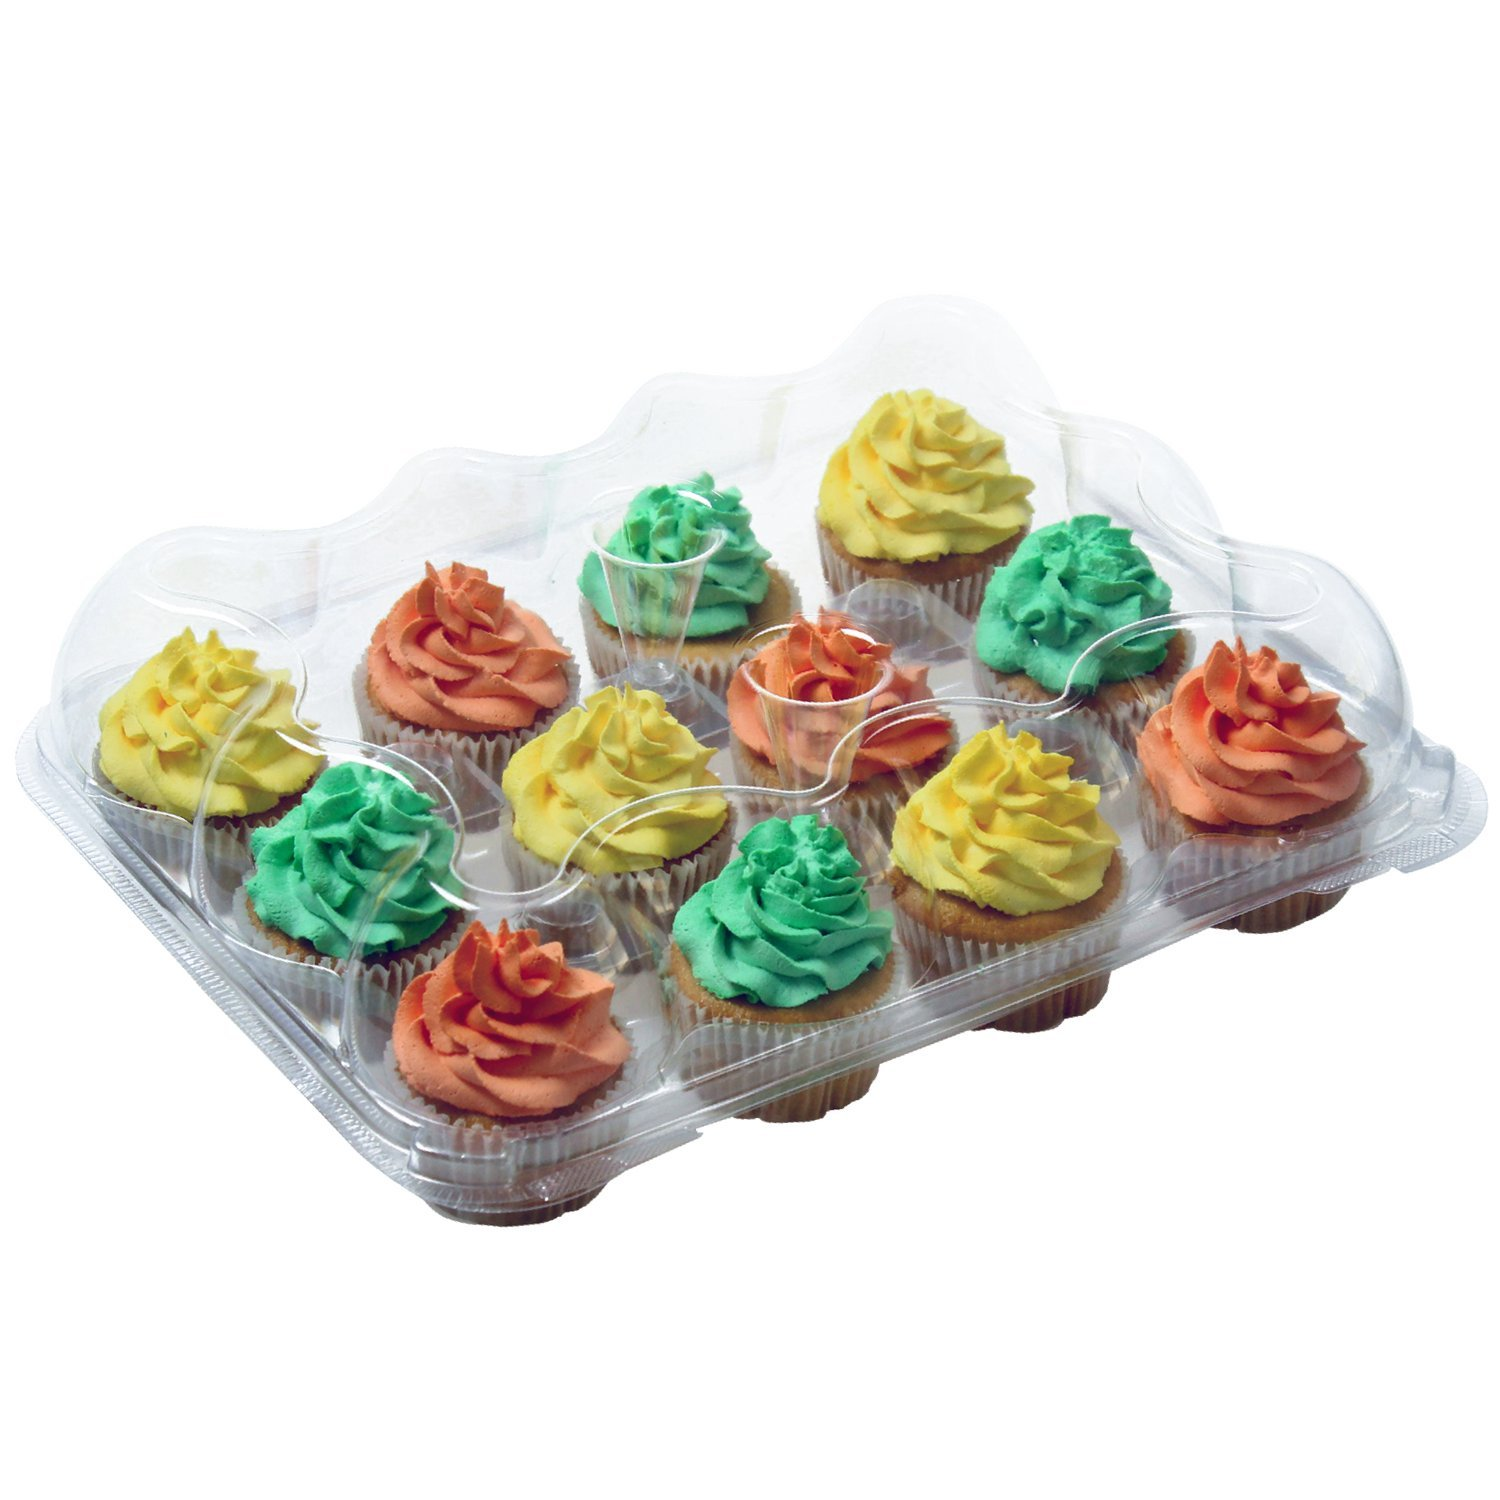 OccasionWise Premium Large Clear Cupcake Boxes with 12 Compartments | Durable Cup Cake Container/Holder to Keep Your Cupcakes or Muffins Delicious and Fresh Longer | Pack of 4